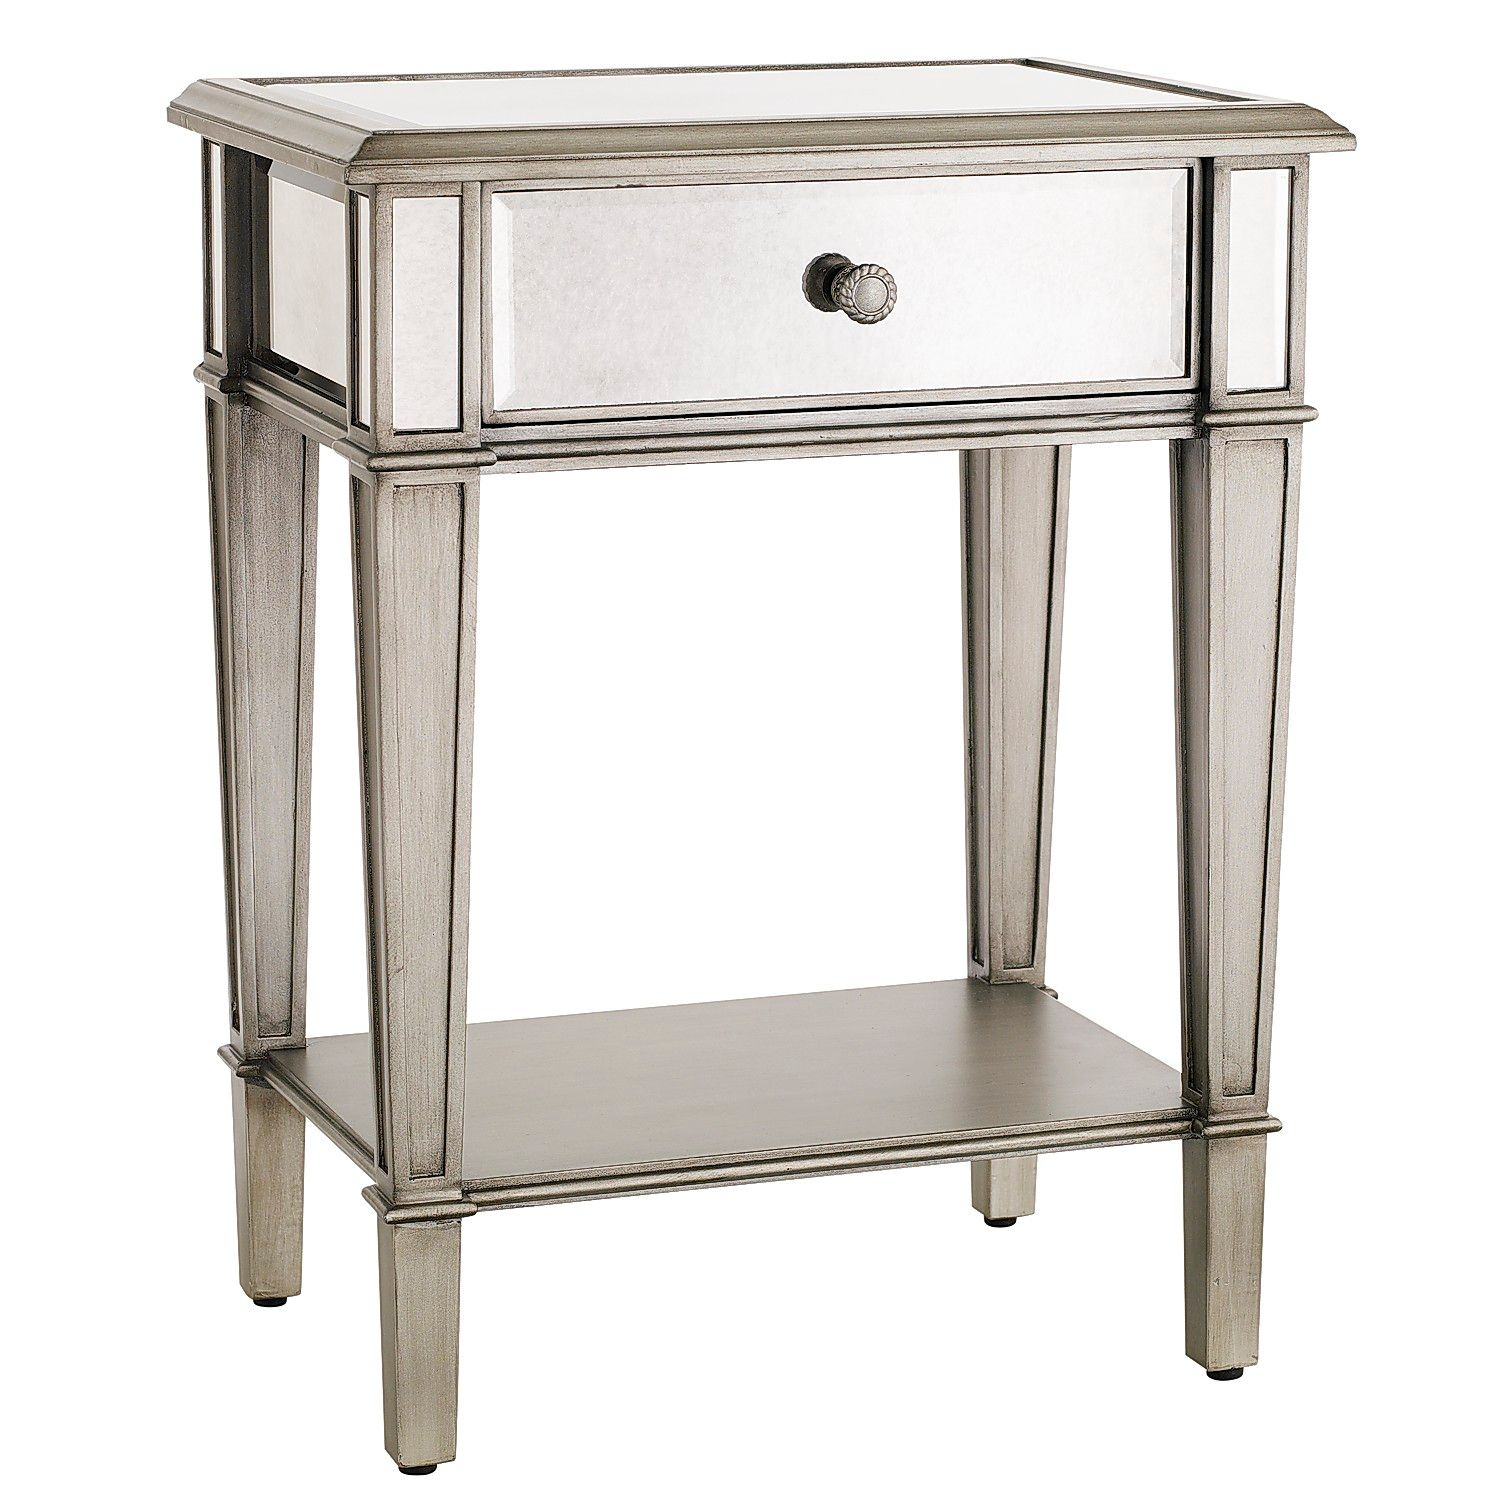 hayworth mirrored silver nightstand pier imports glass accent table with drawer top mimosa outdoor furniture patio nic wireless lamps small gas grill target fur pillow side coffee